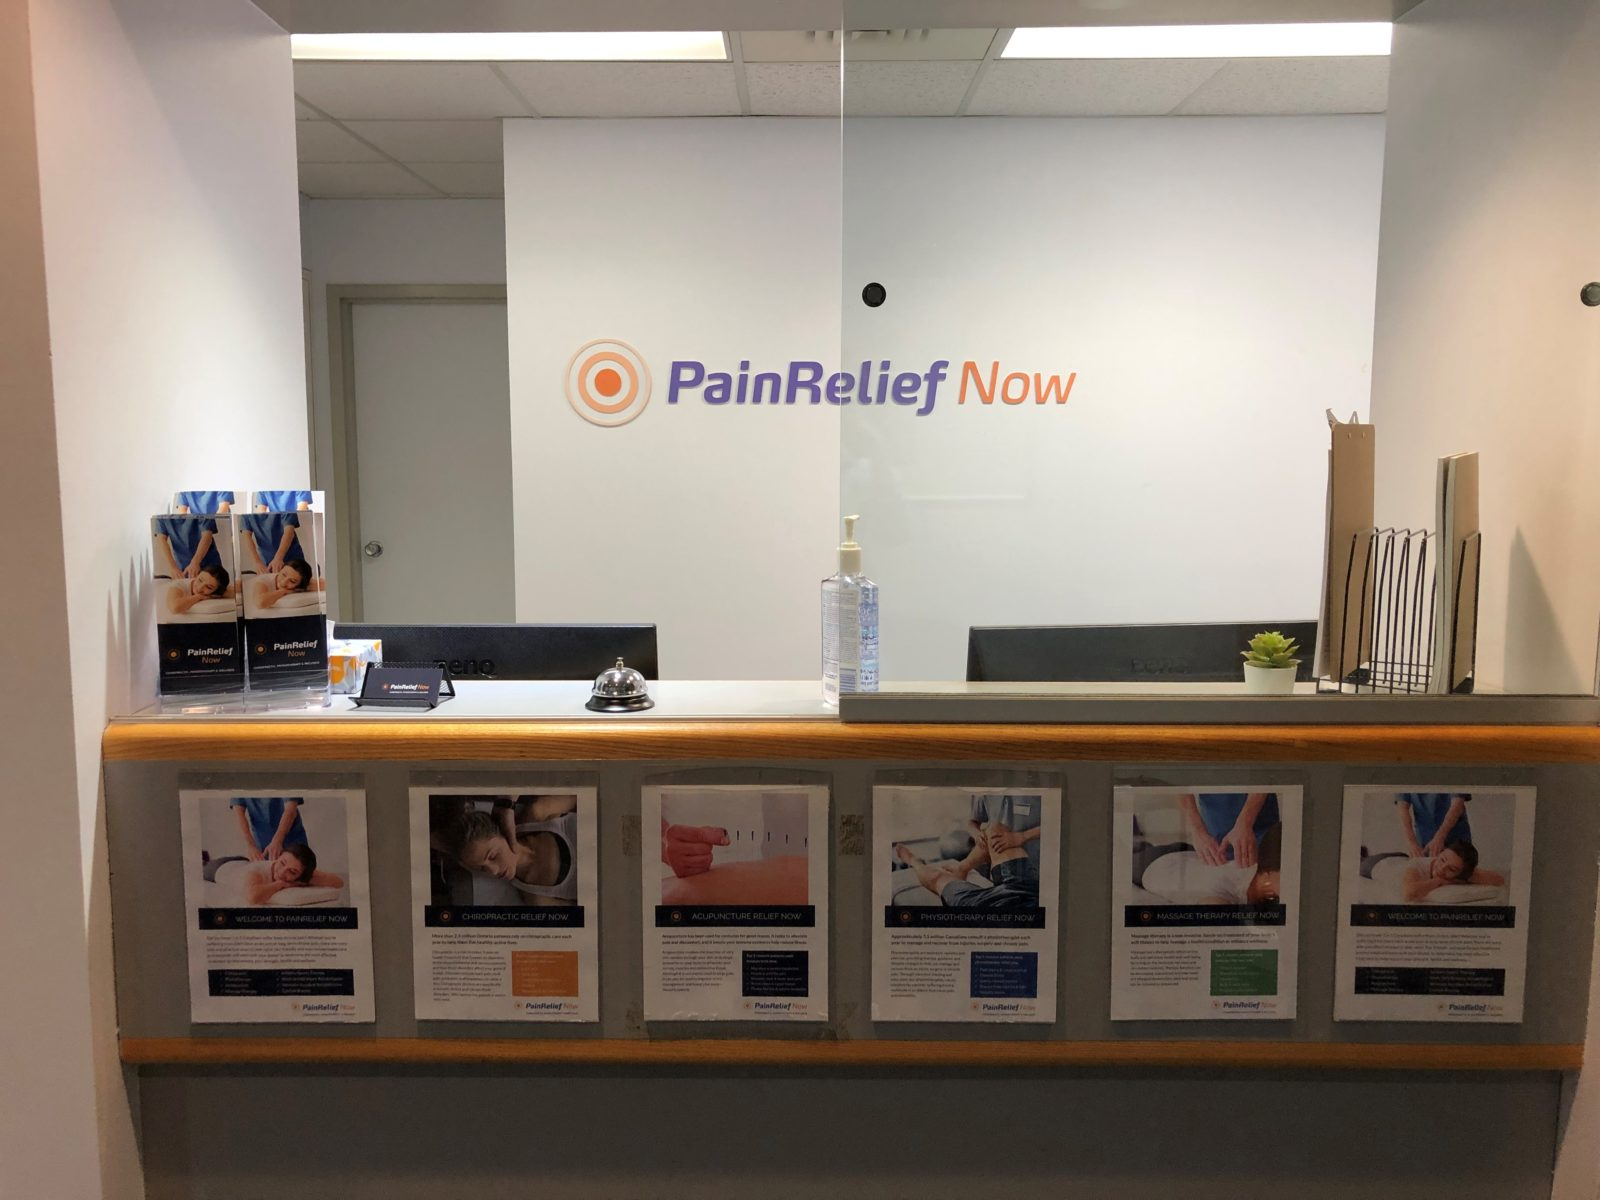 PainRelief Now Reception